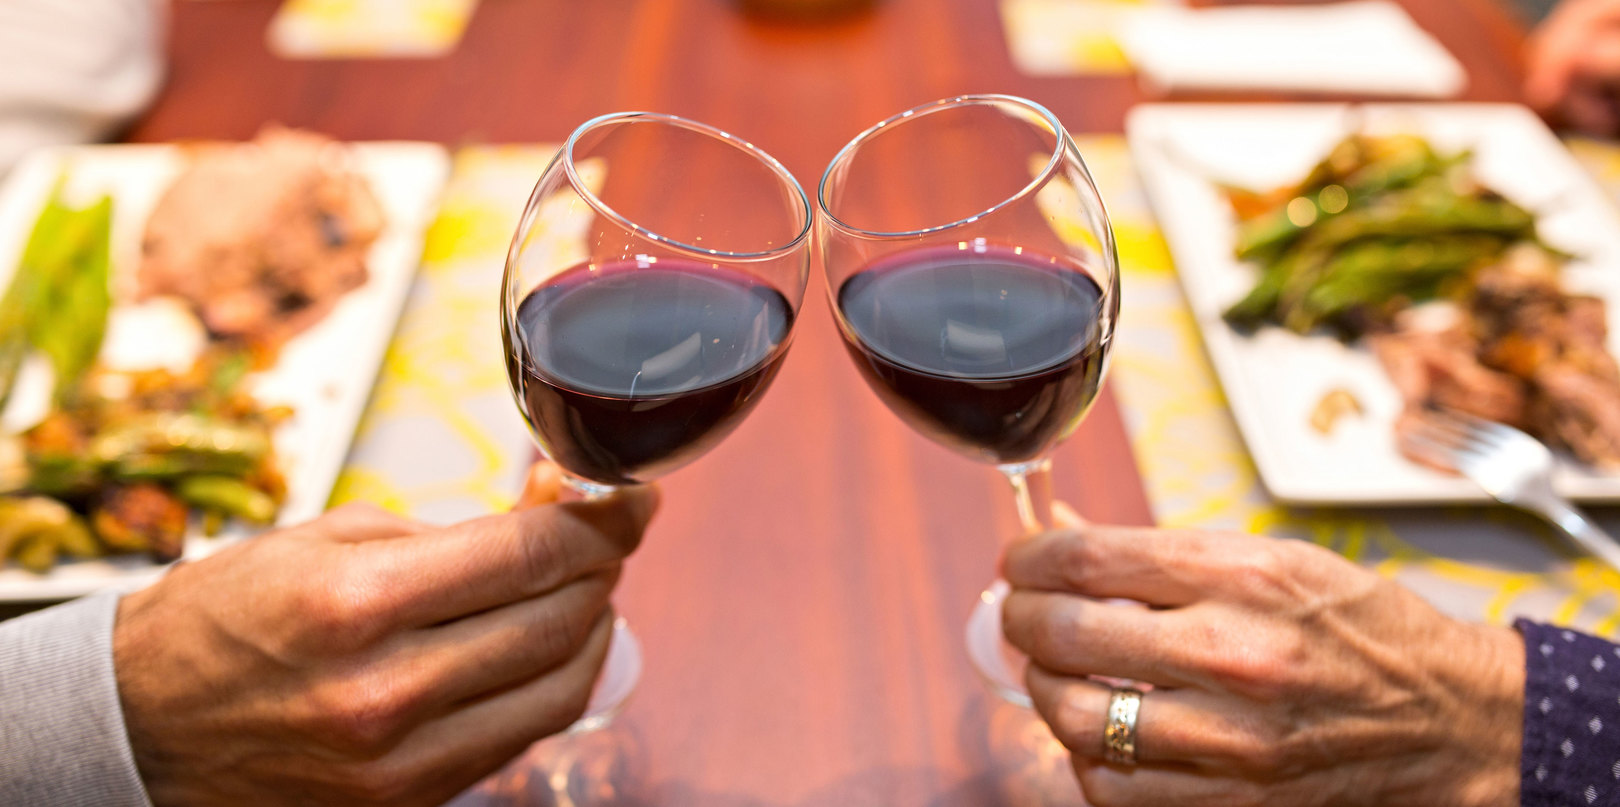 Is the break-up of our relationship with alcohol long overdue?